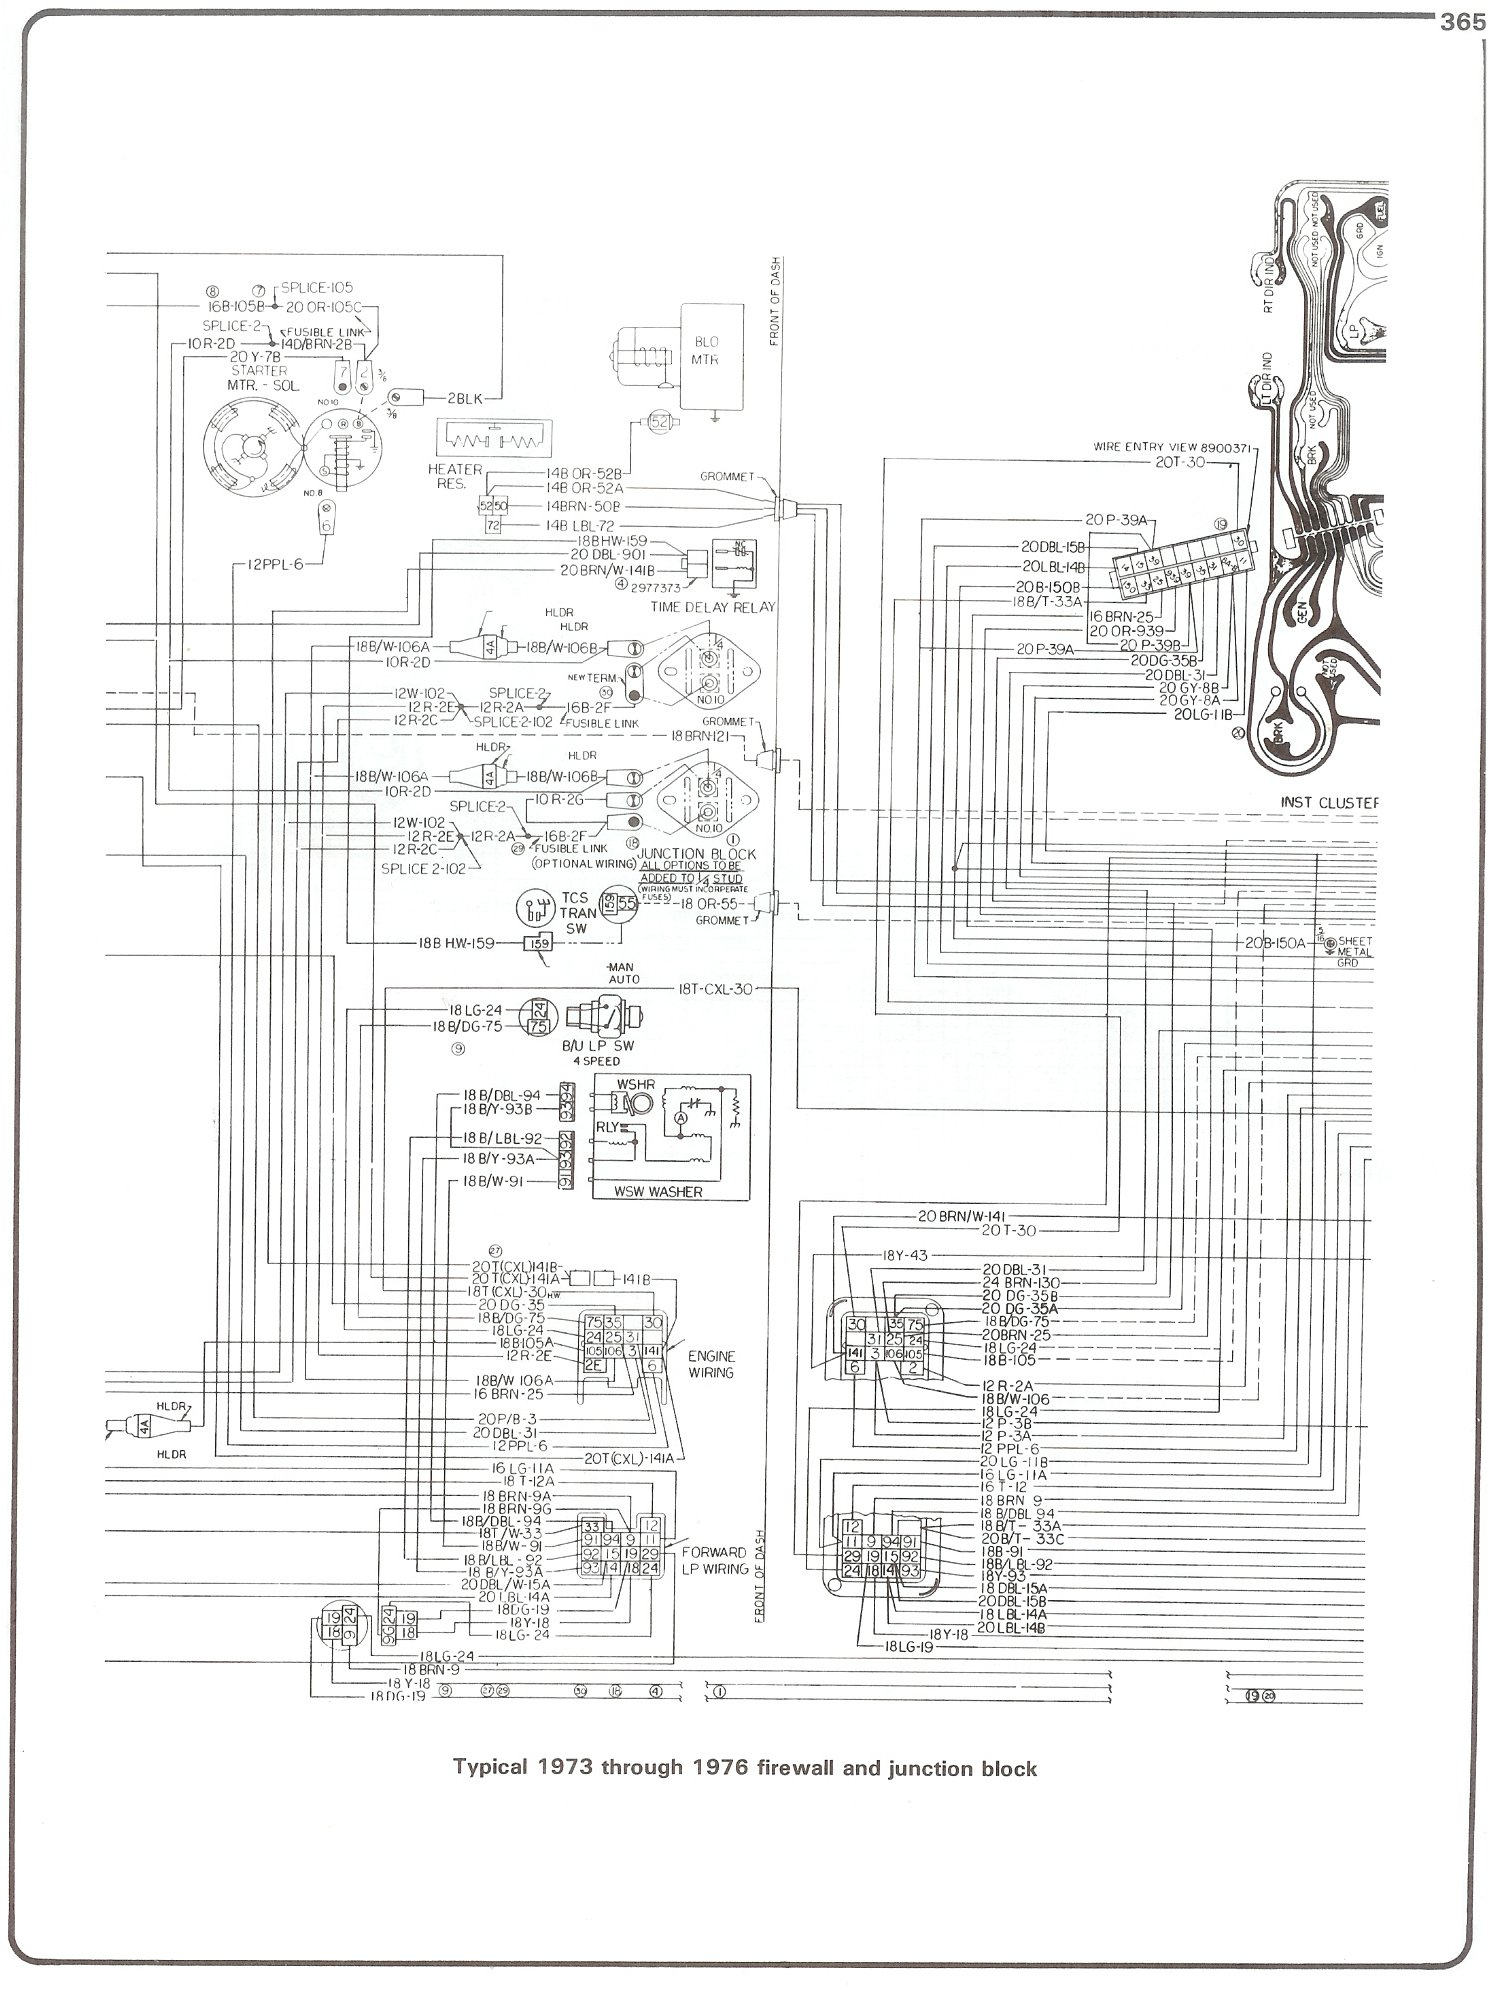 Wiring Diagram 1978 Chevy Pickup | Manual E-Books - 1978 Chevy Truck Wiring Diagram